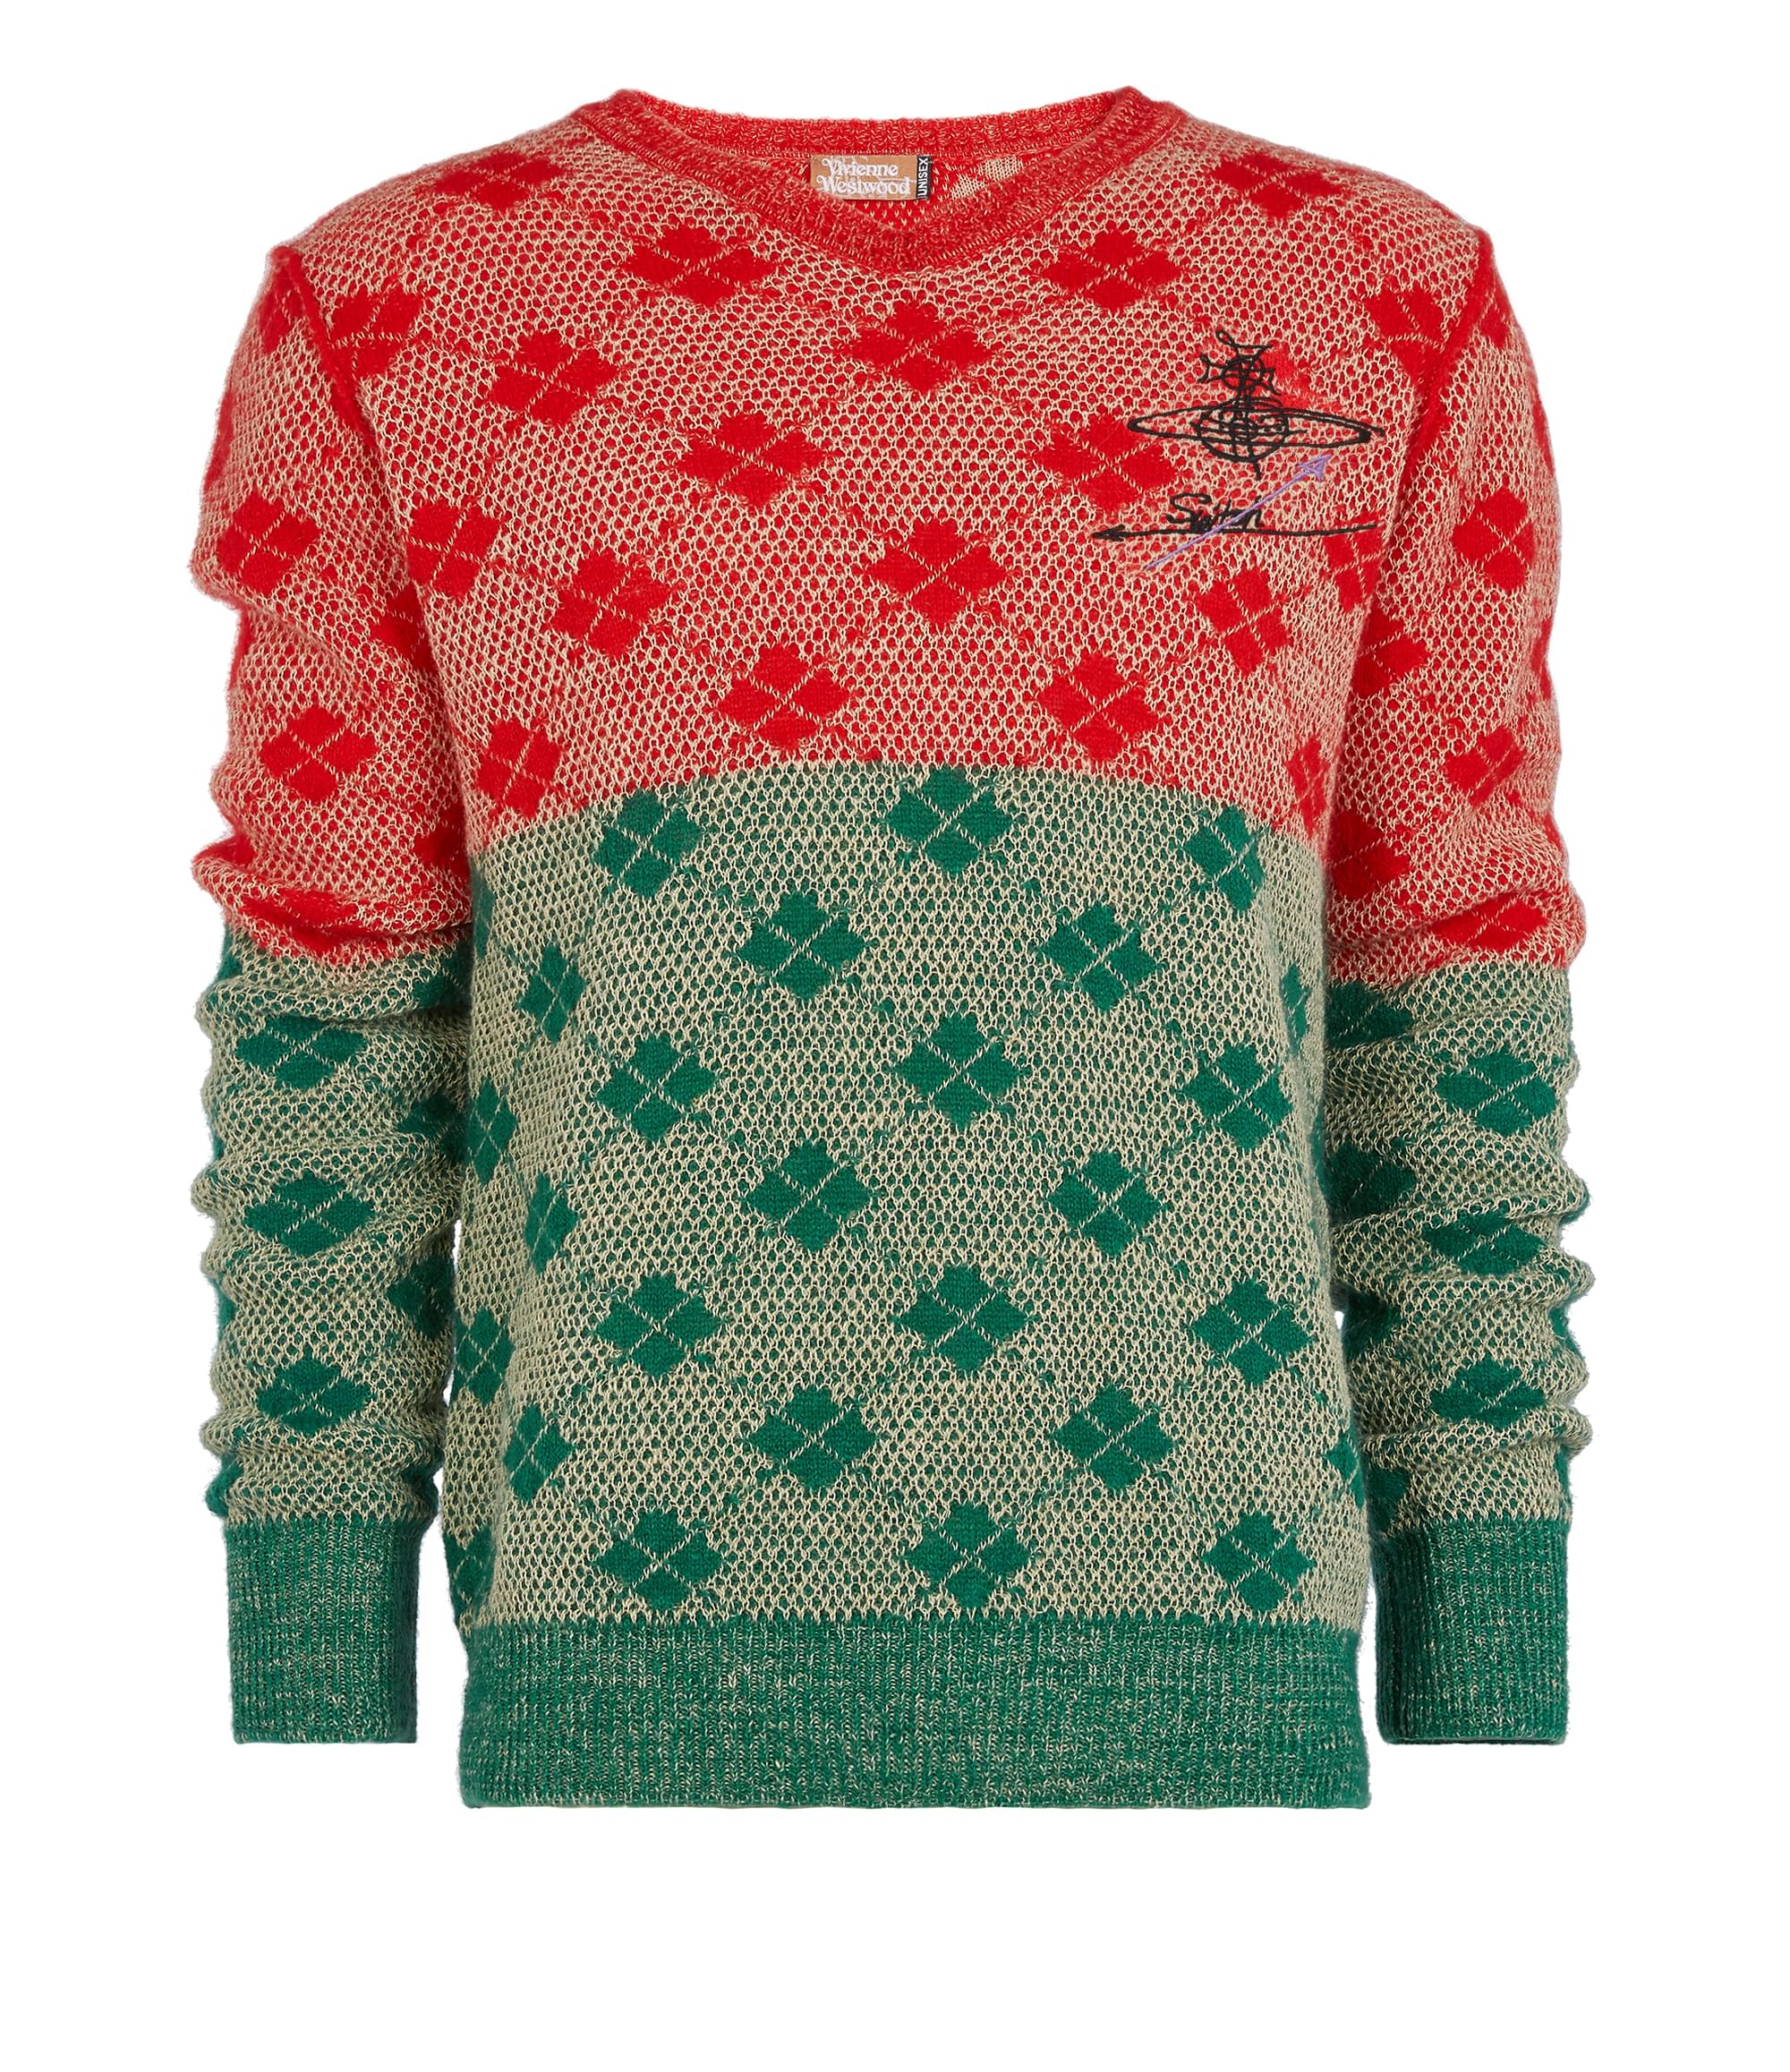 Vivienne Westwood Diamonds Jumper Red\/Green\/Natural Mix